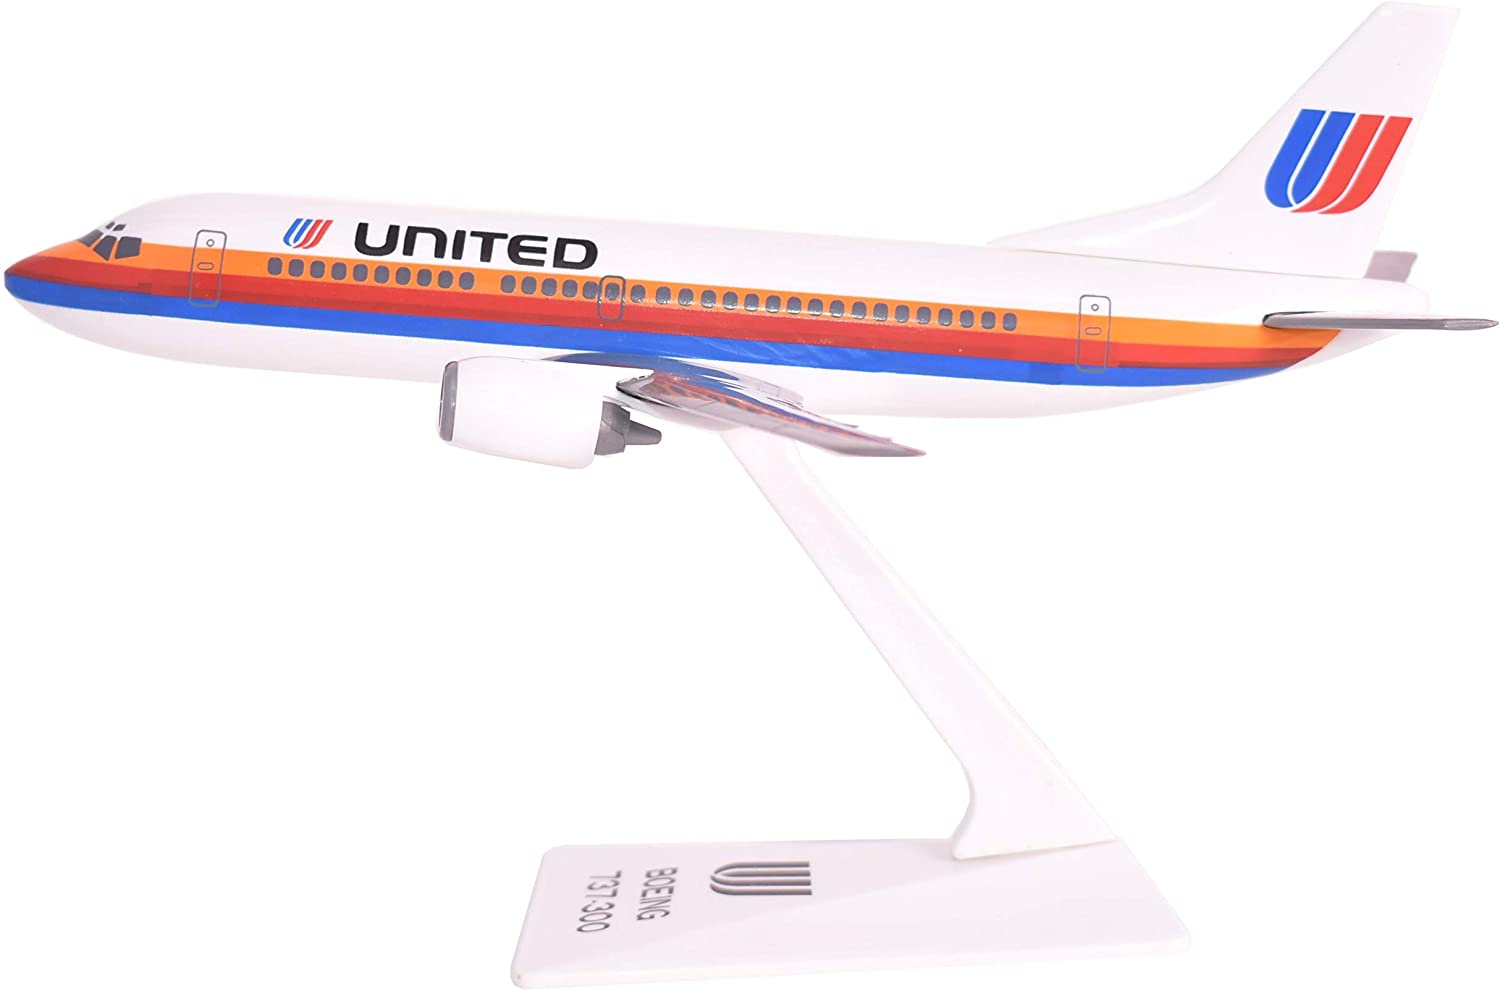 United 76-93 737-300 Airplane Miniature Model Plastic Snap Fit 1:180 Part# ABO-73730F-003